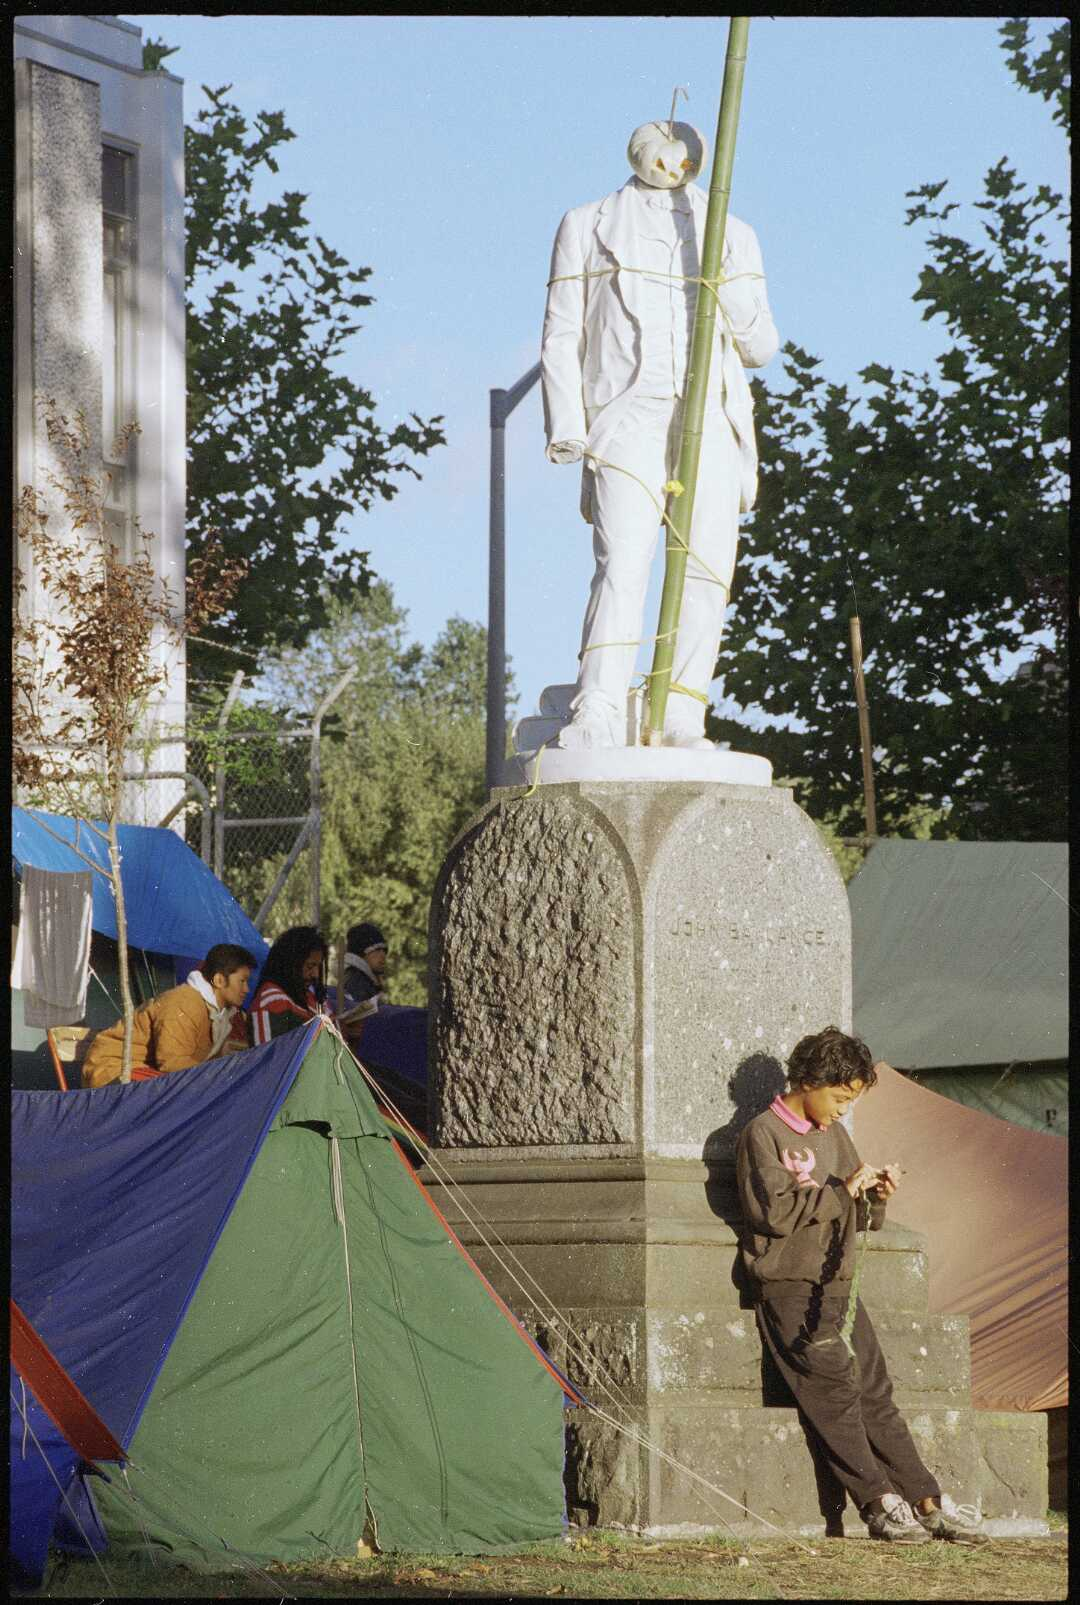 Ballance statue 1995 image from ATL